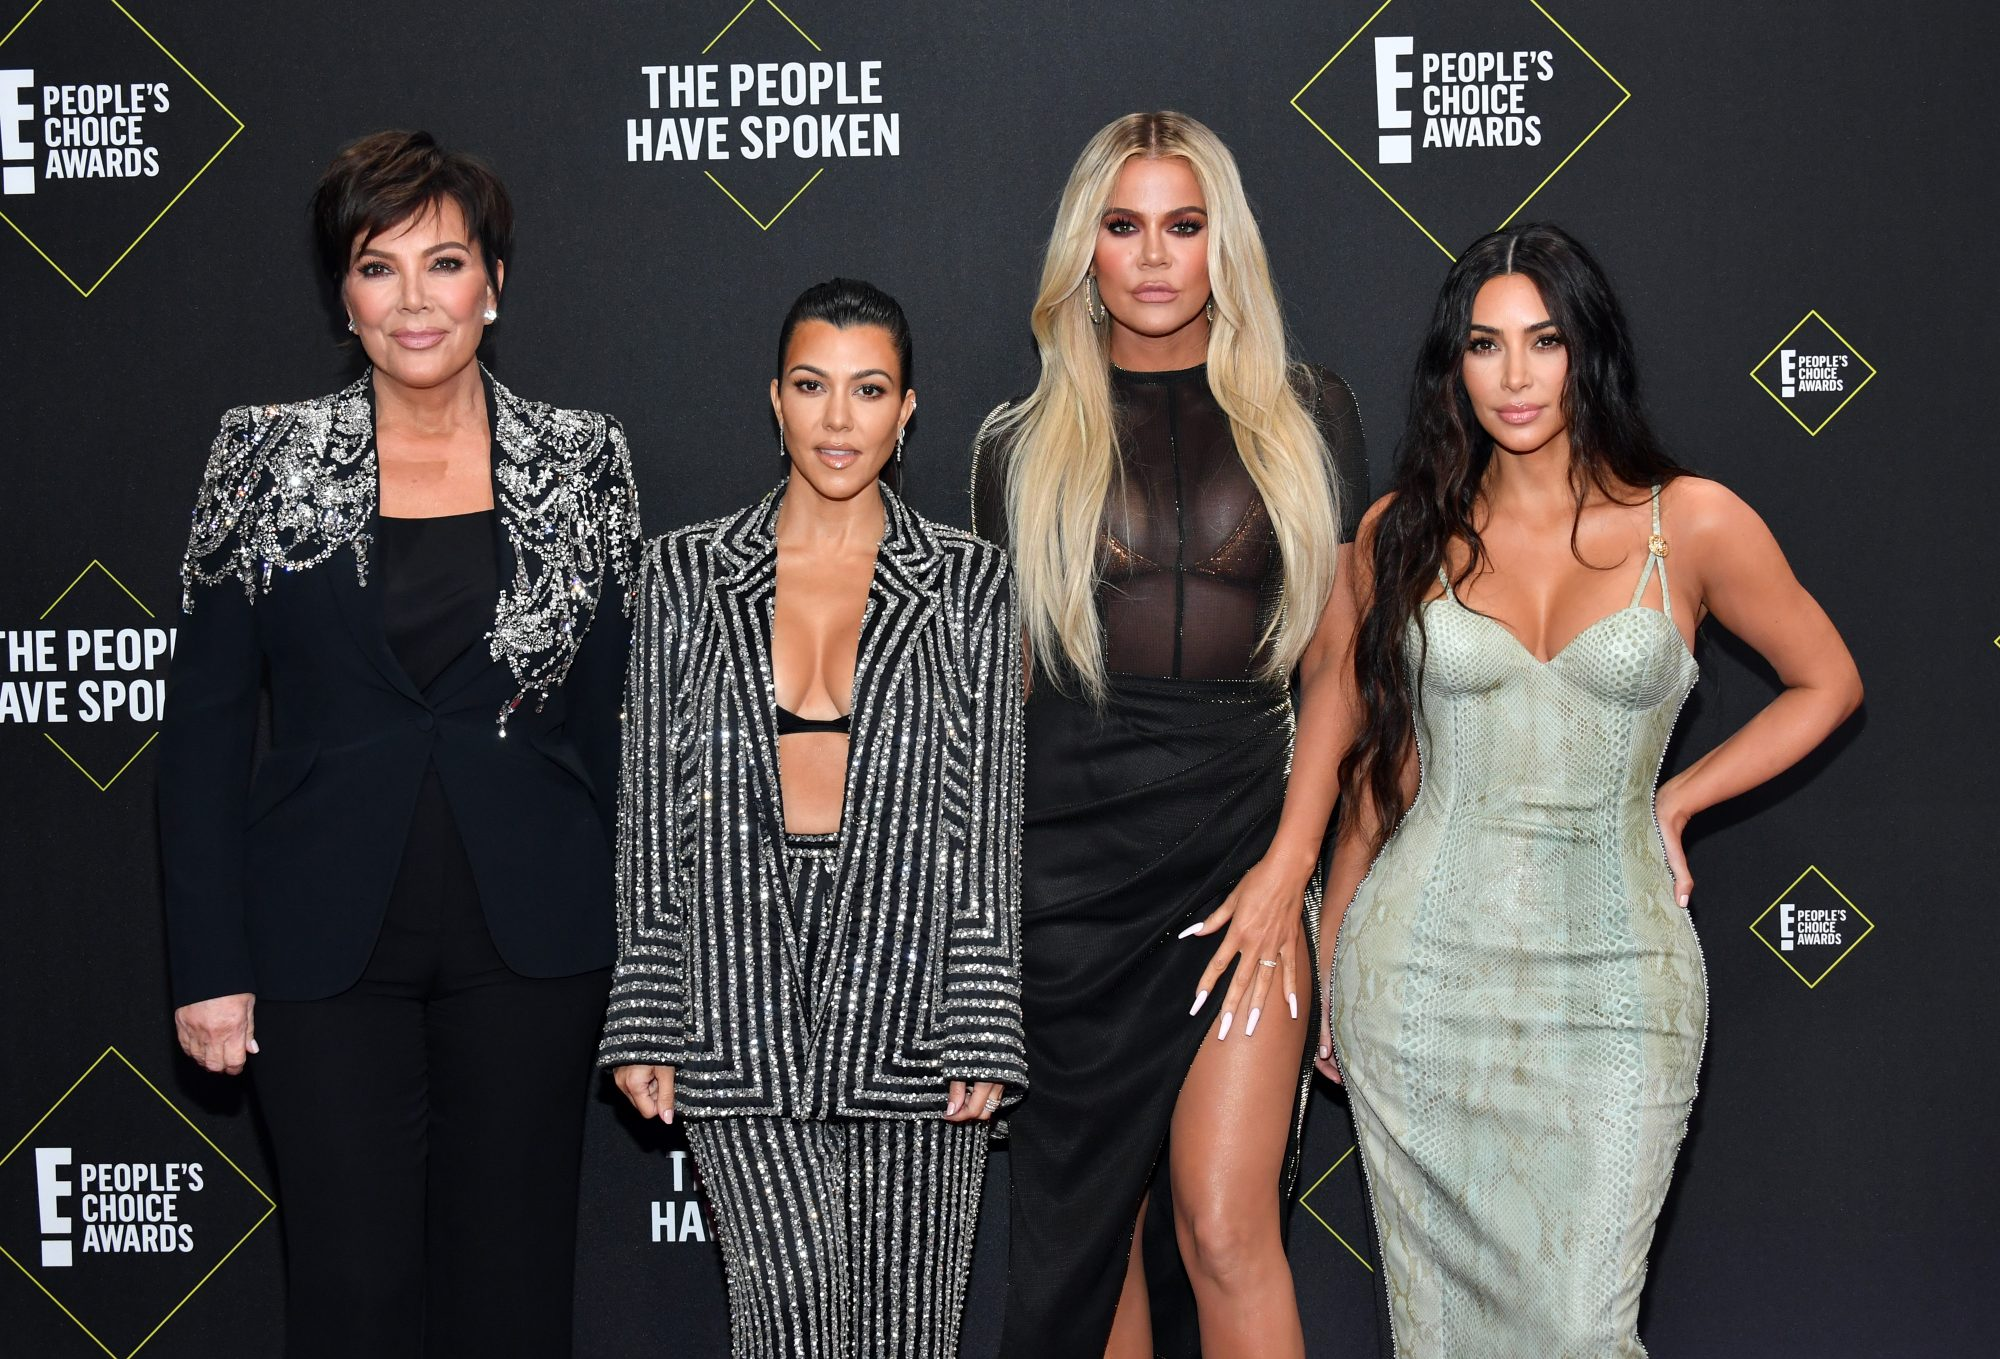 Kris Jenner, Kourtney Kardashian, Khloé Kardashian, Kim Kardashian West, People's Choice Awards